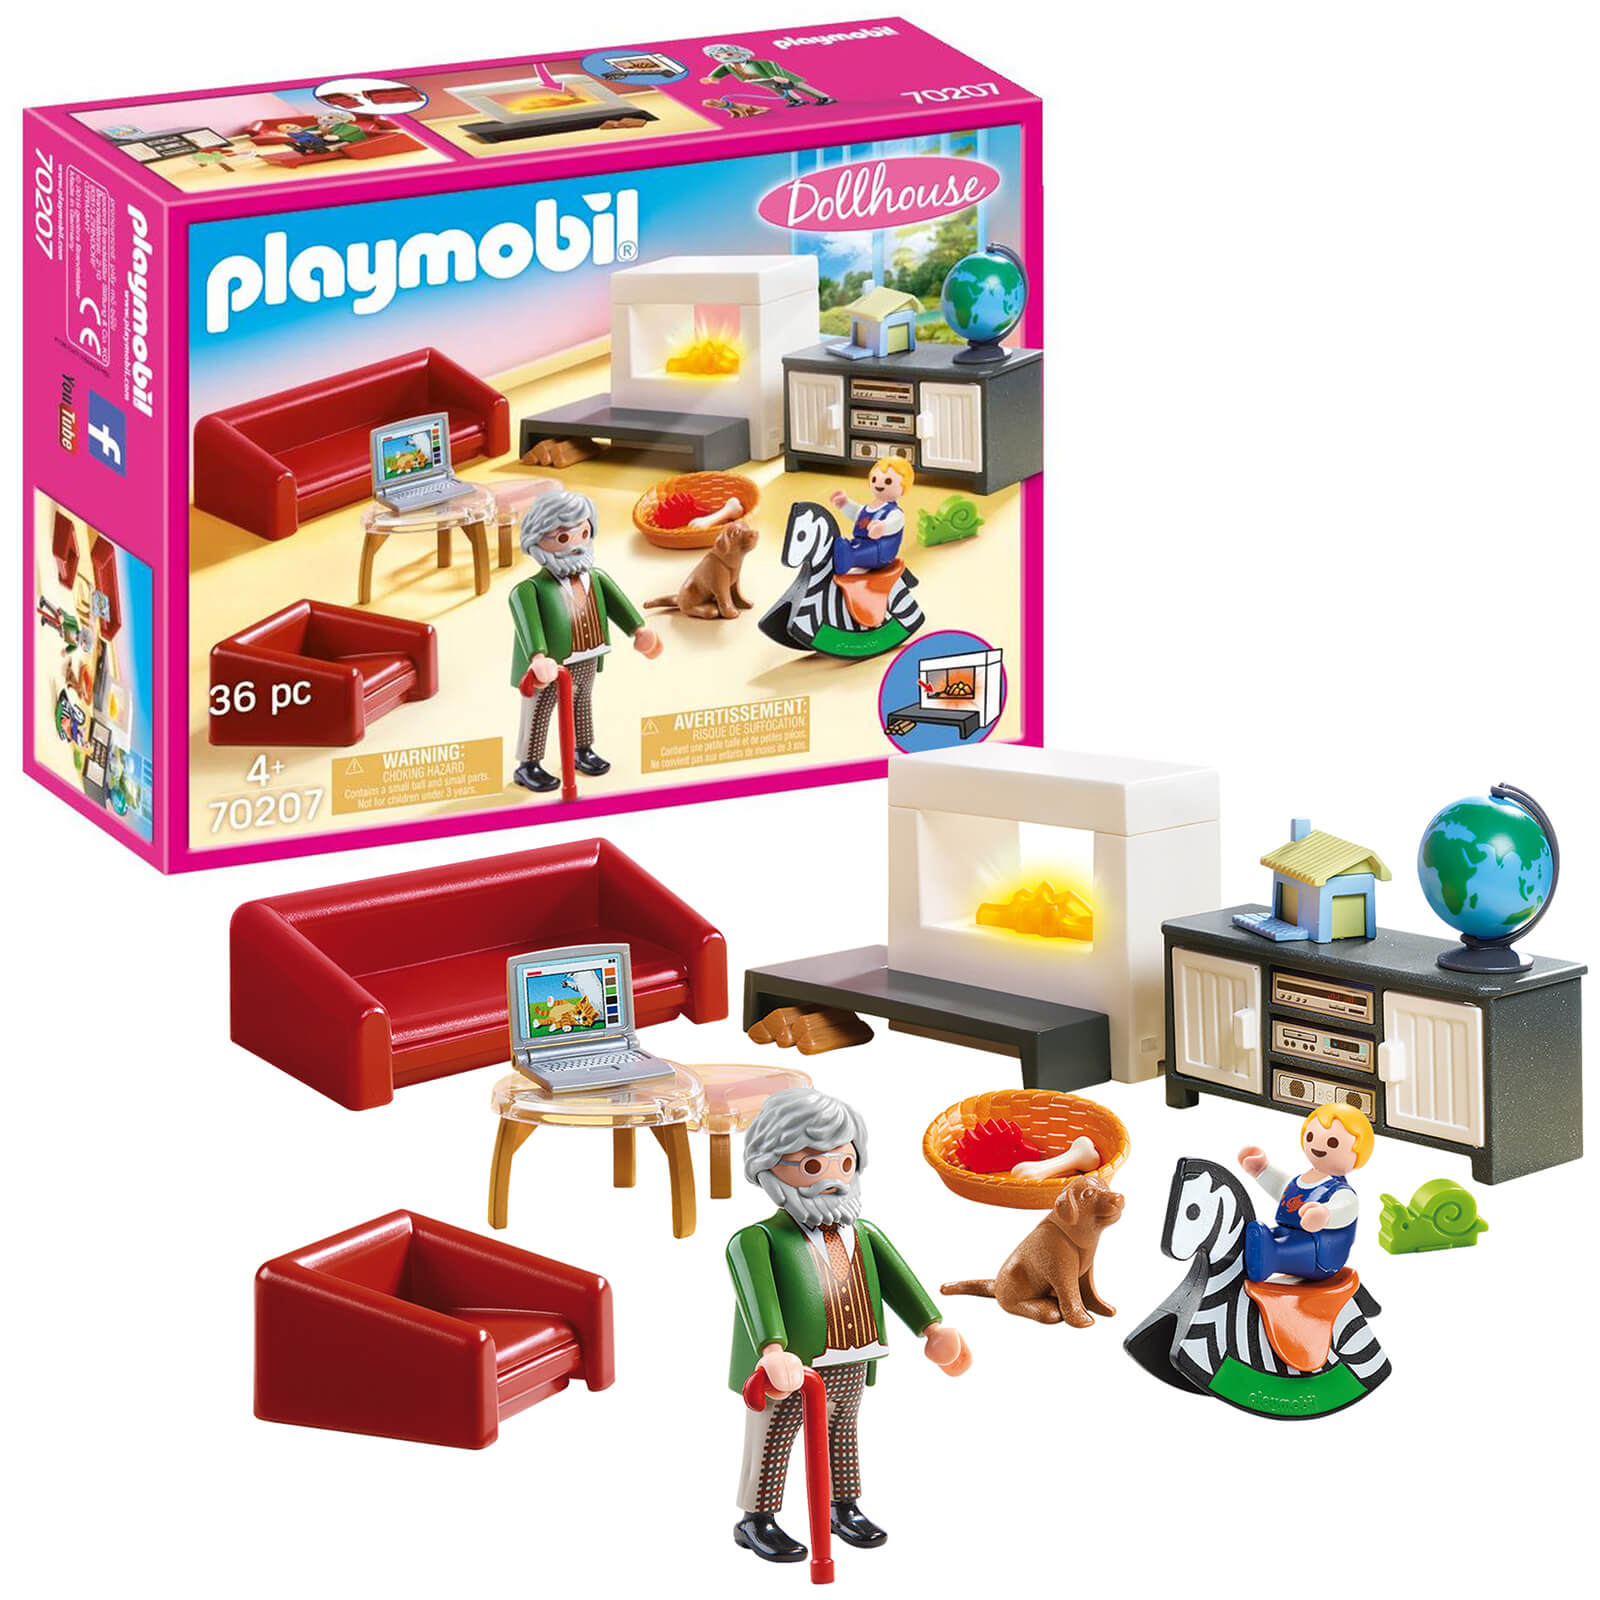 Playmobil Dollhouse Living Room With Fireplace (70207)